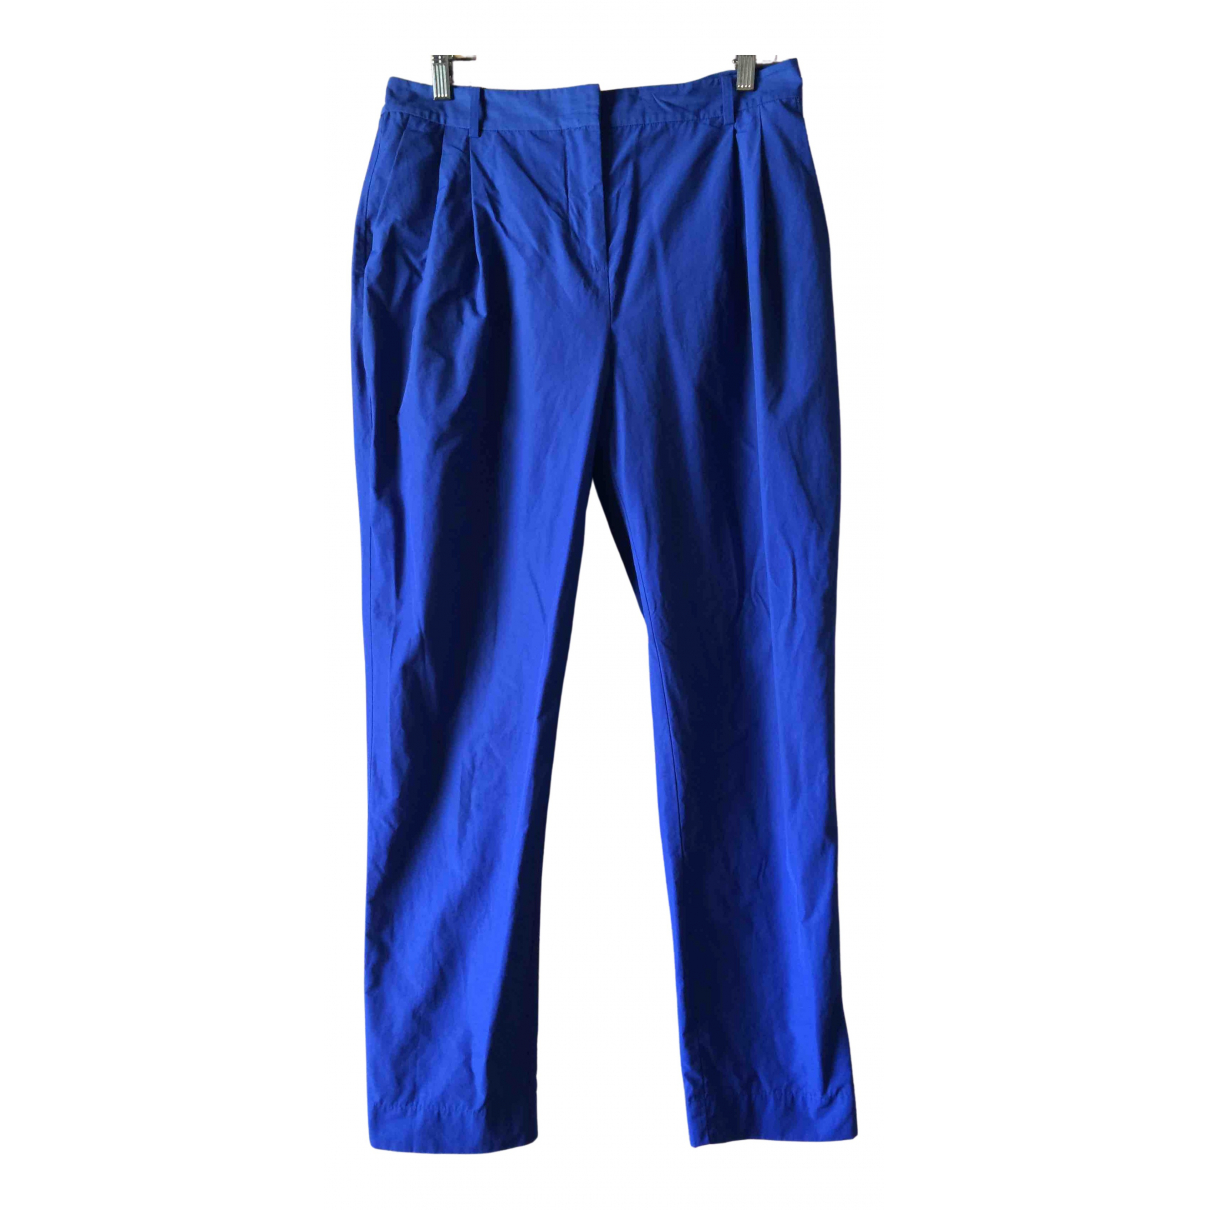 T By Alexander Wang N Blue Cotton Trousers for Women 8 US